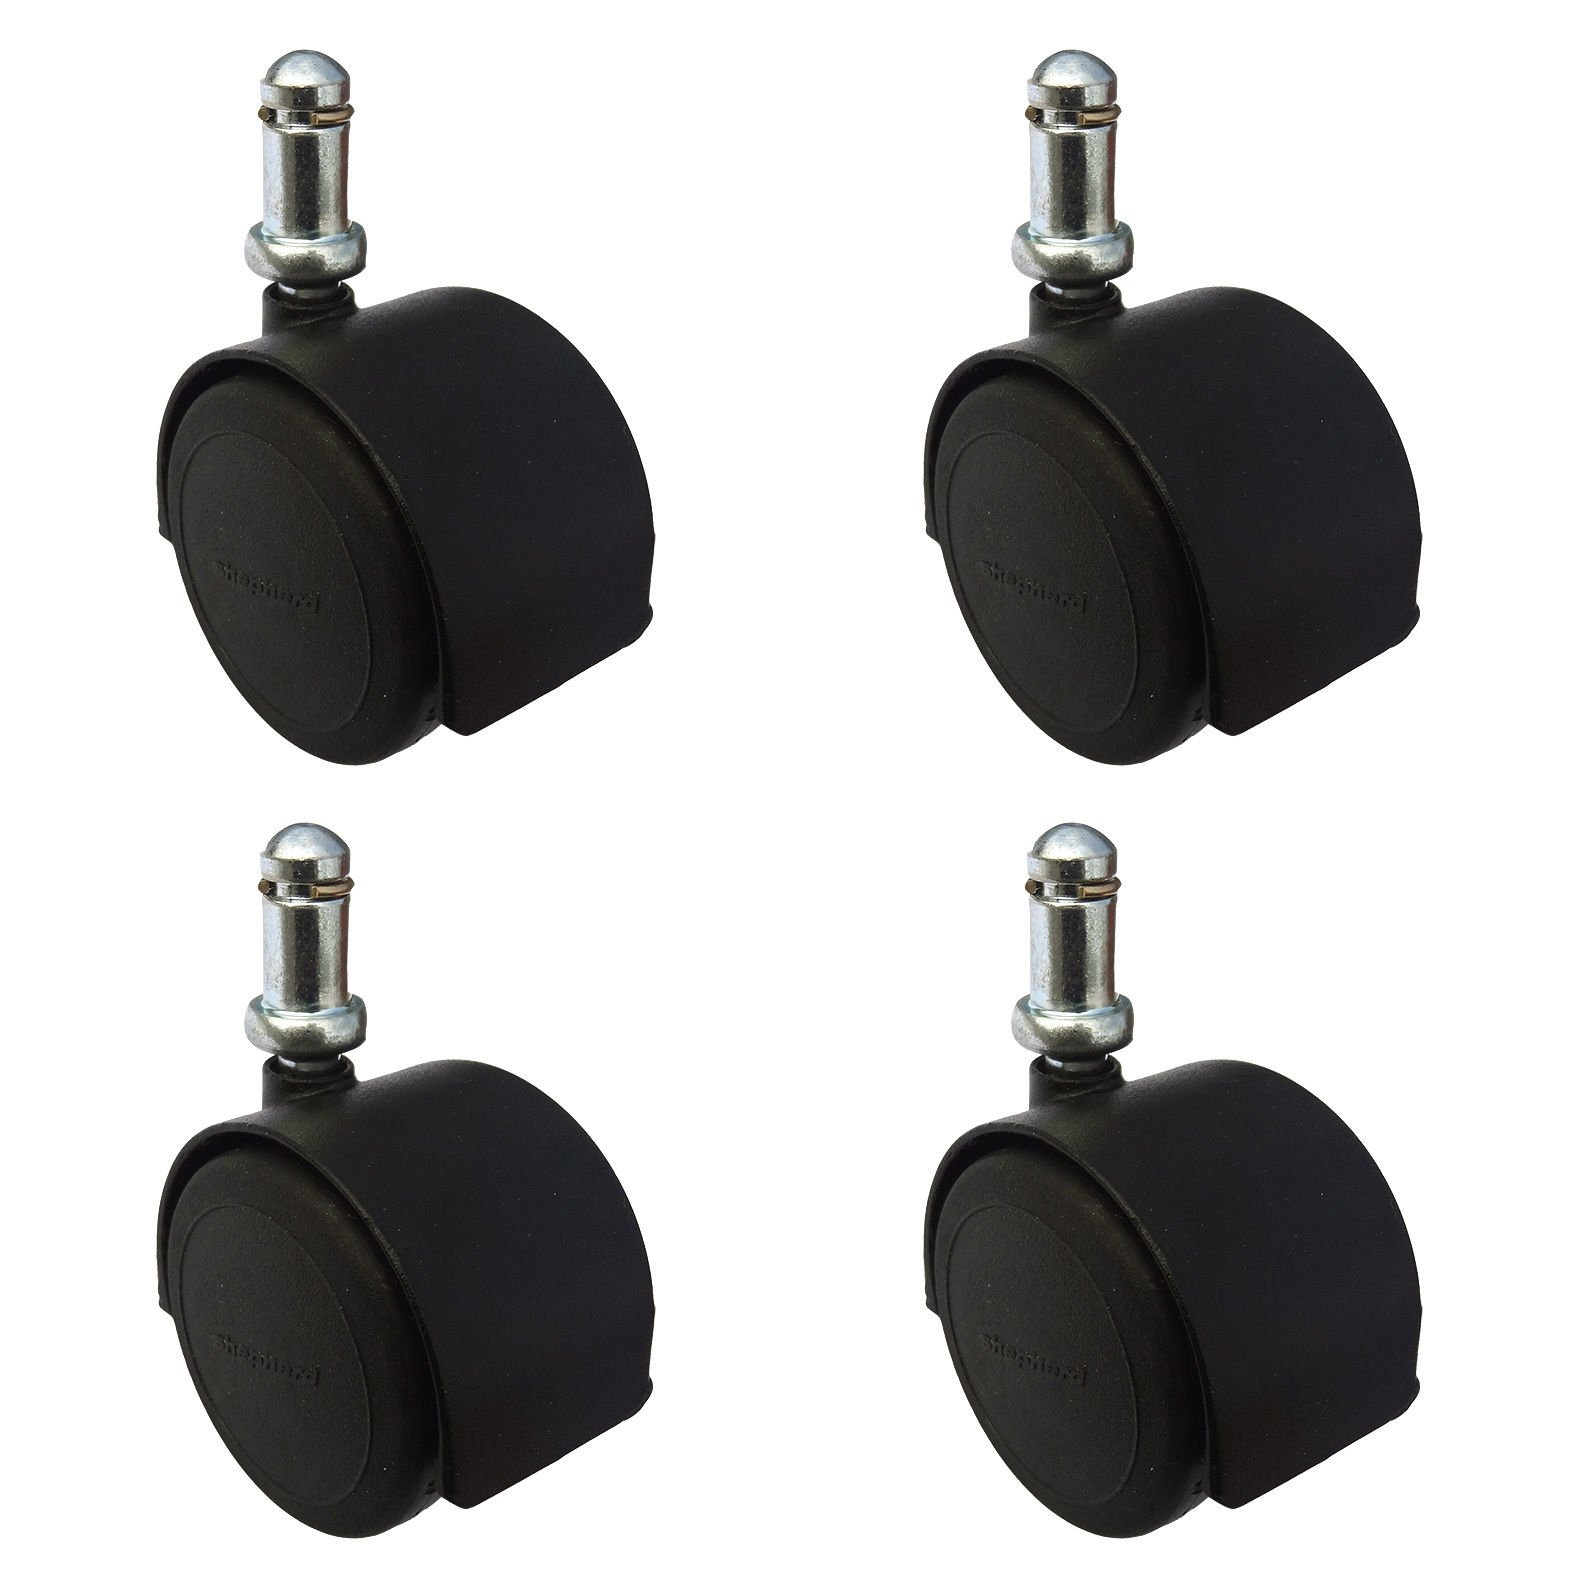 Heavy Duty Office Chair Casters 2-3/8'' (60mm) Pacer Hardwood Floor Safe Urethane Wheels Set of 4 by Shepherd